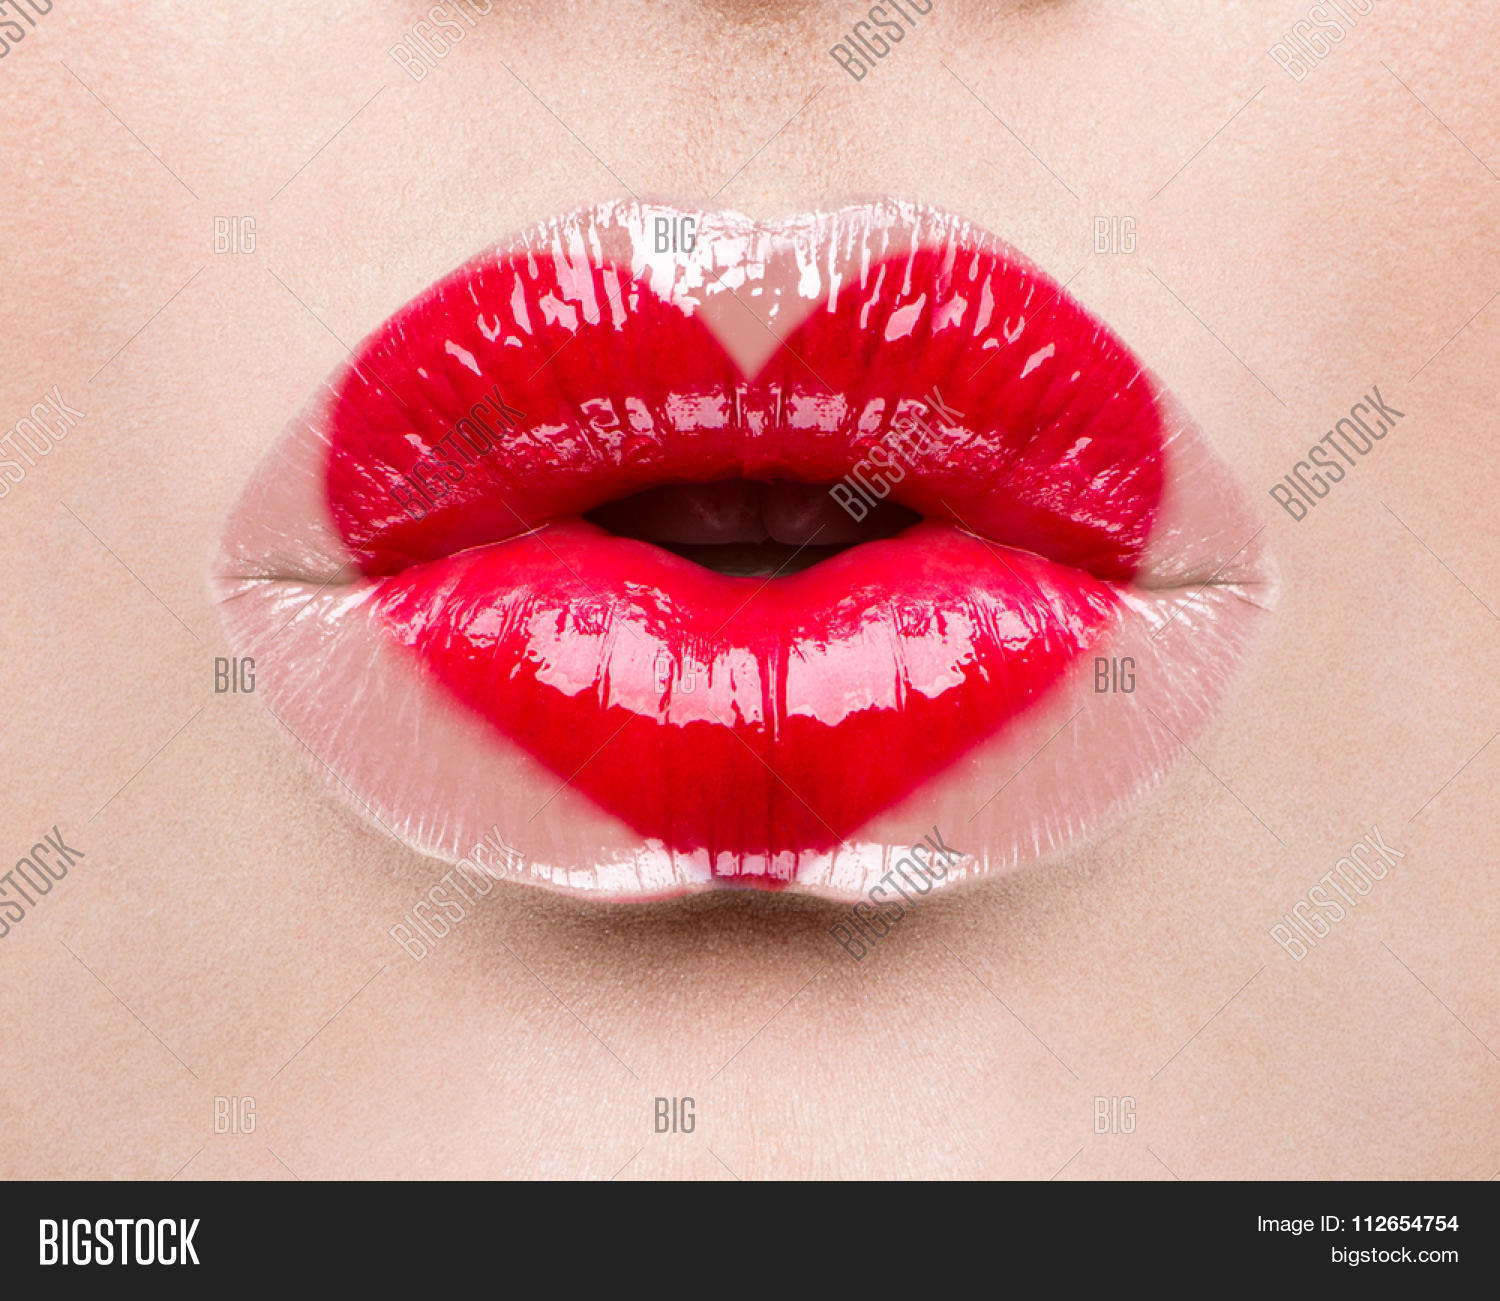 Kiss And Makeup Day: Valentine Heart Kiss Image & Photo (Free Trial)